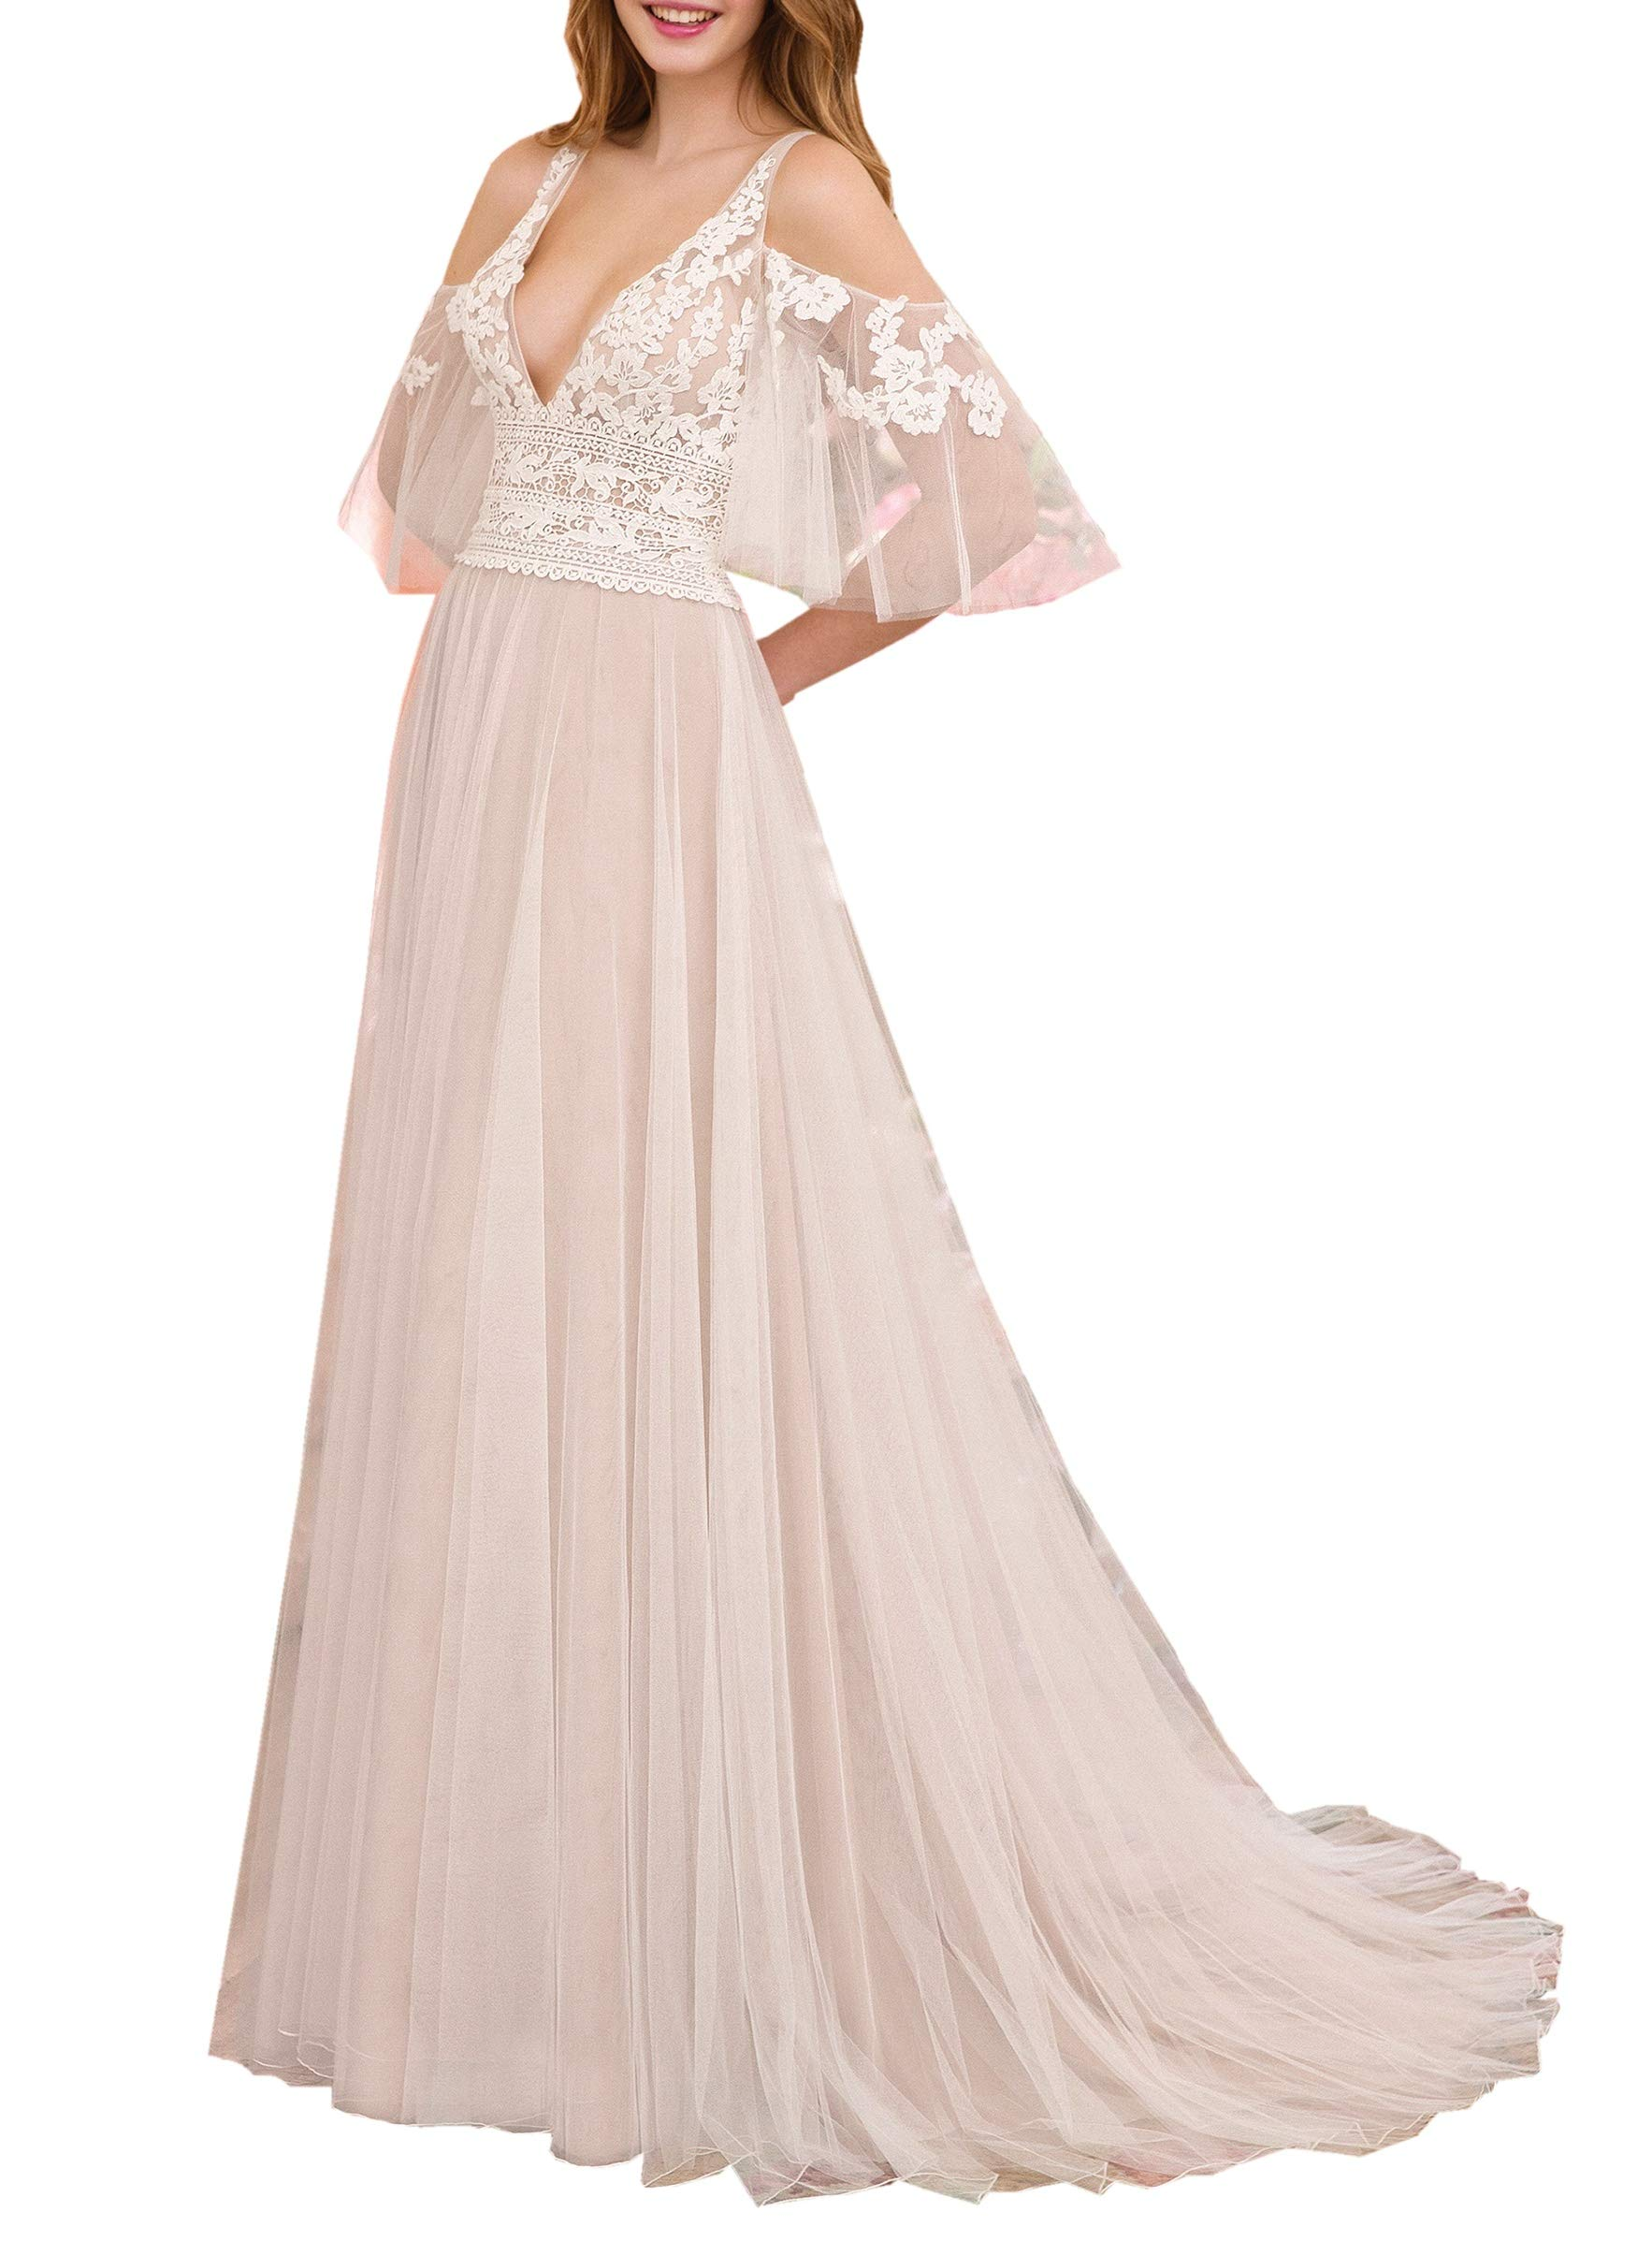 Mauwey Women S V Neck Lace Applique Beach Wedding Dress Bell Sleeve Tulle Bohemian Bridal Gown A Line